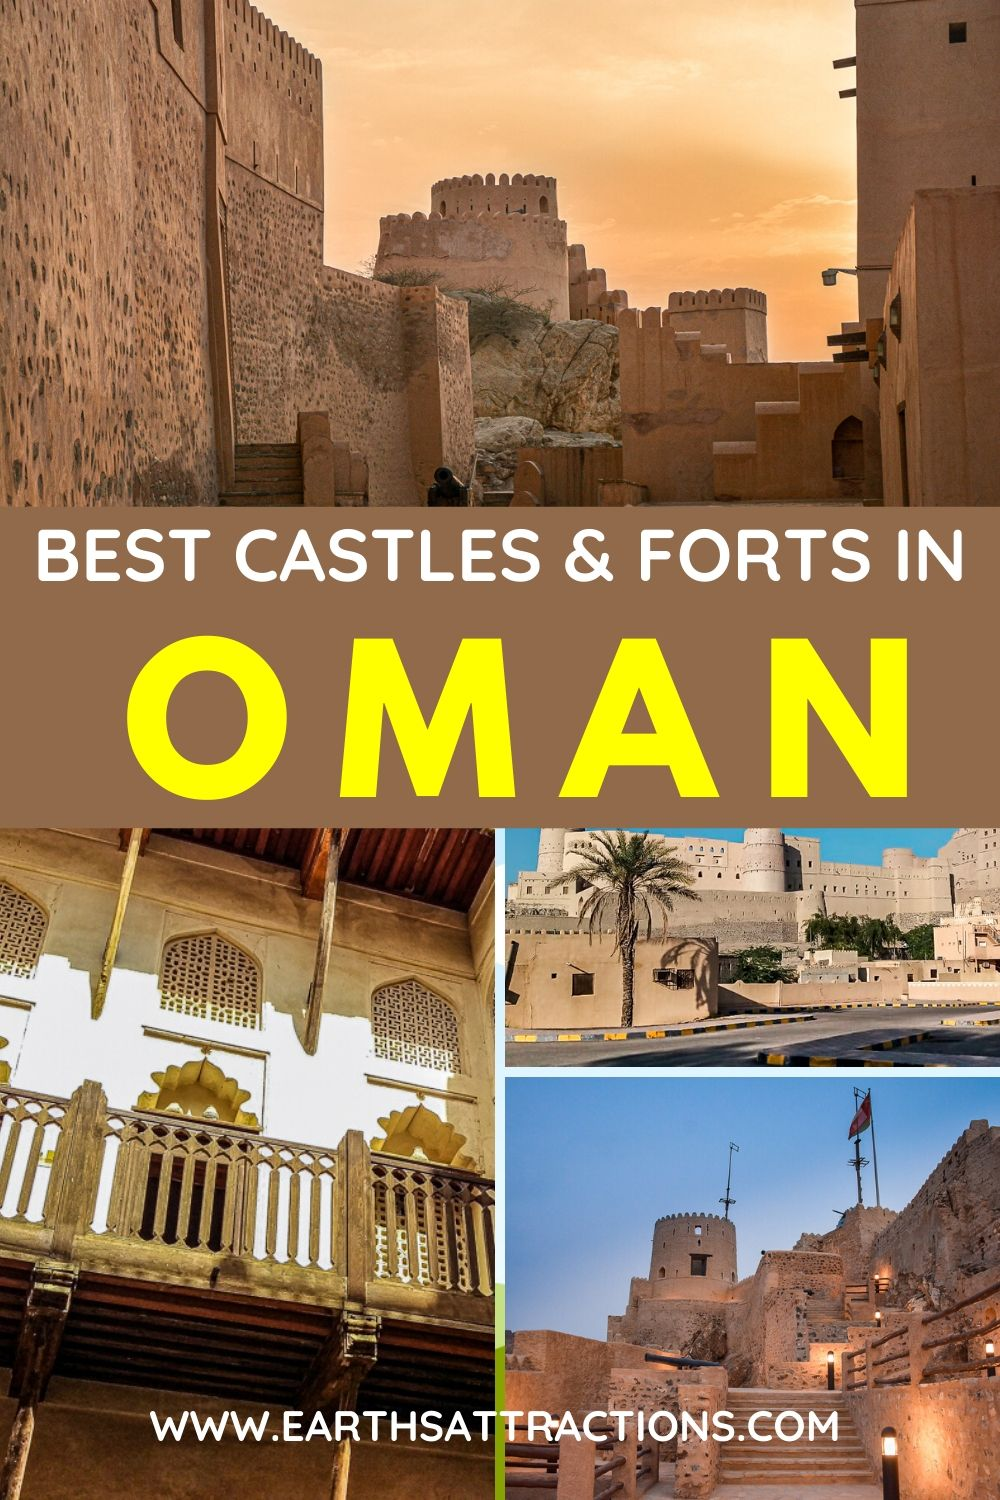 The best Castles and Forts in Oman. Discover the best places to visit in Oman shared by a local. These are the most important forts in Oman and the best castles in Oman to see on your Oman trip. Read the article now and discover the best things to do in Oman from Bahla Fort to Jabreen Castle, Nizwa Fort, Mutrah Fort, and more. #oman #asiatravel #omanforts #omancastles #earthsattractions #traveldestinations